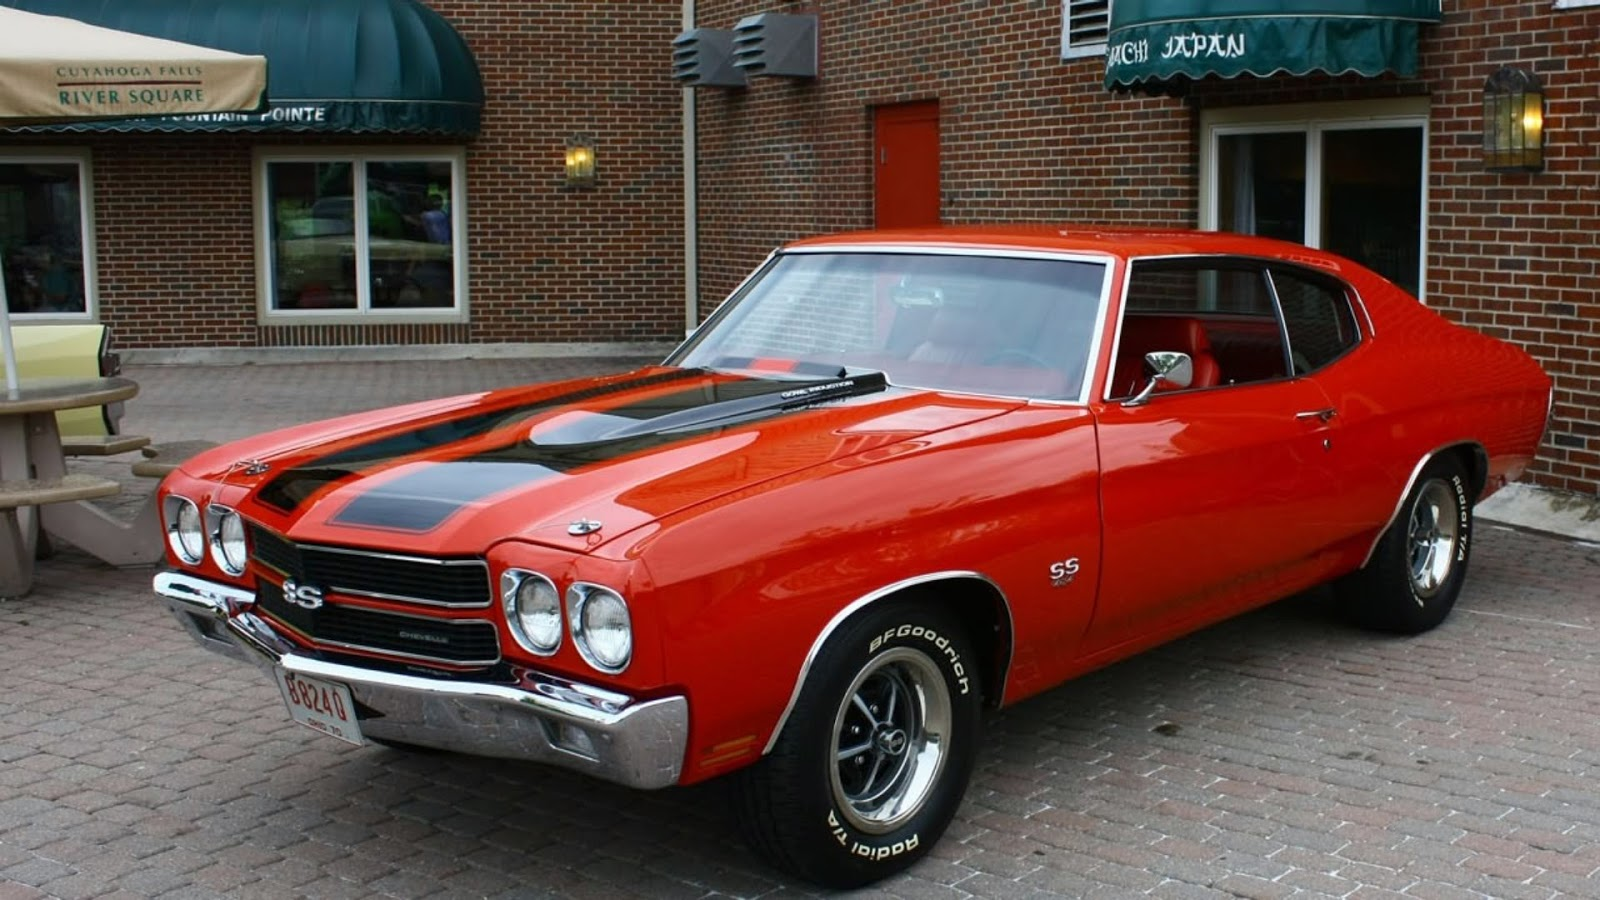 The Best Old Muscle Cars 1970 Chevelle 454 Ss